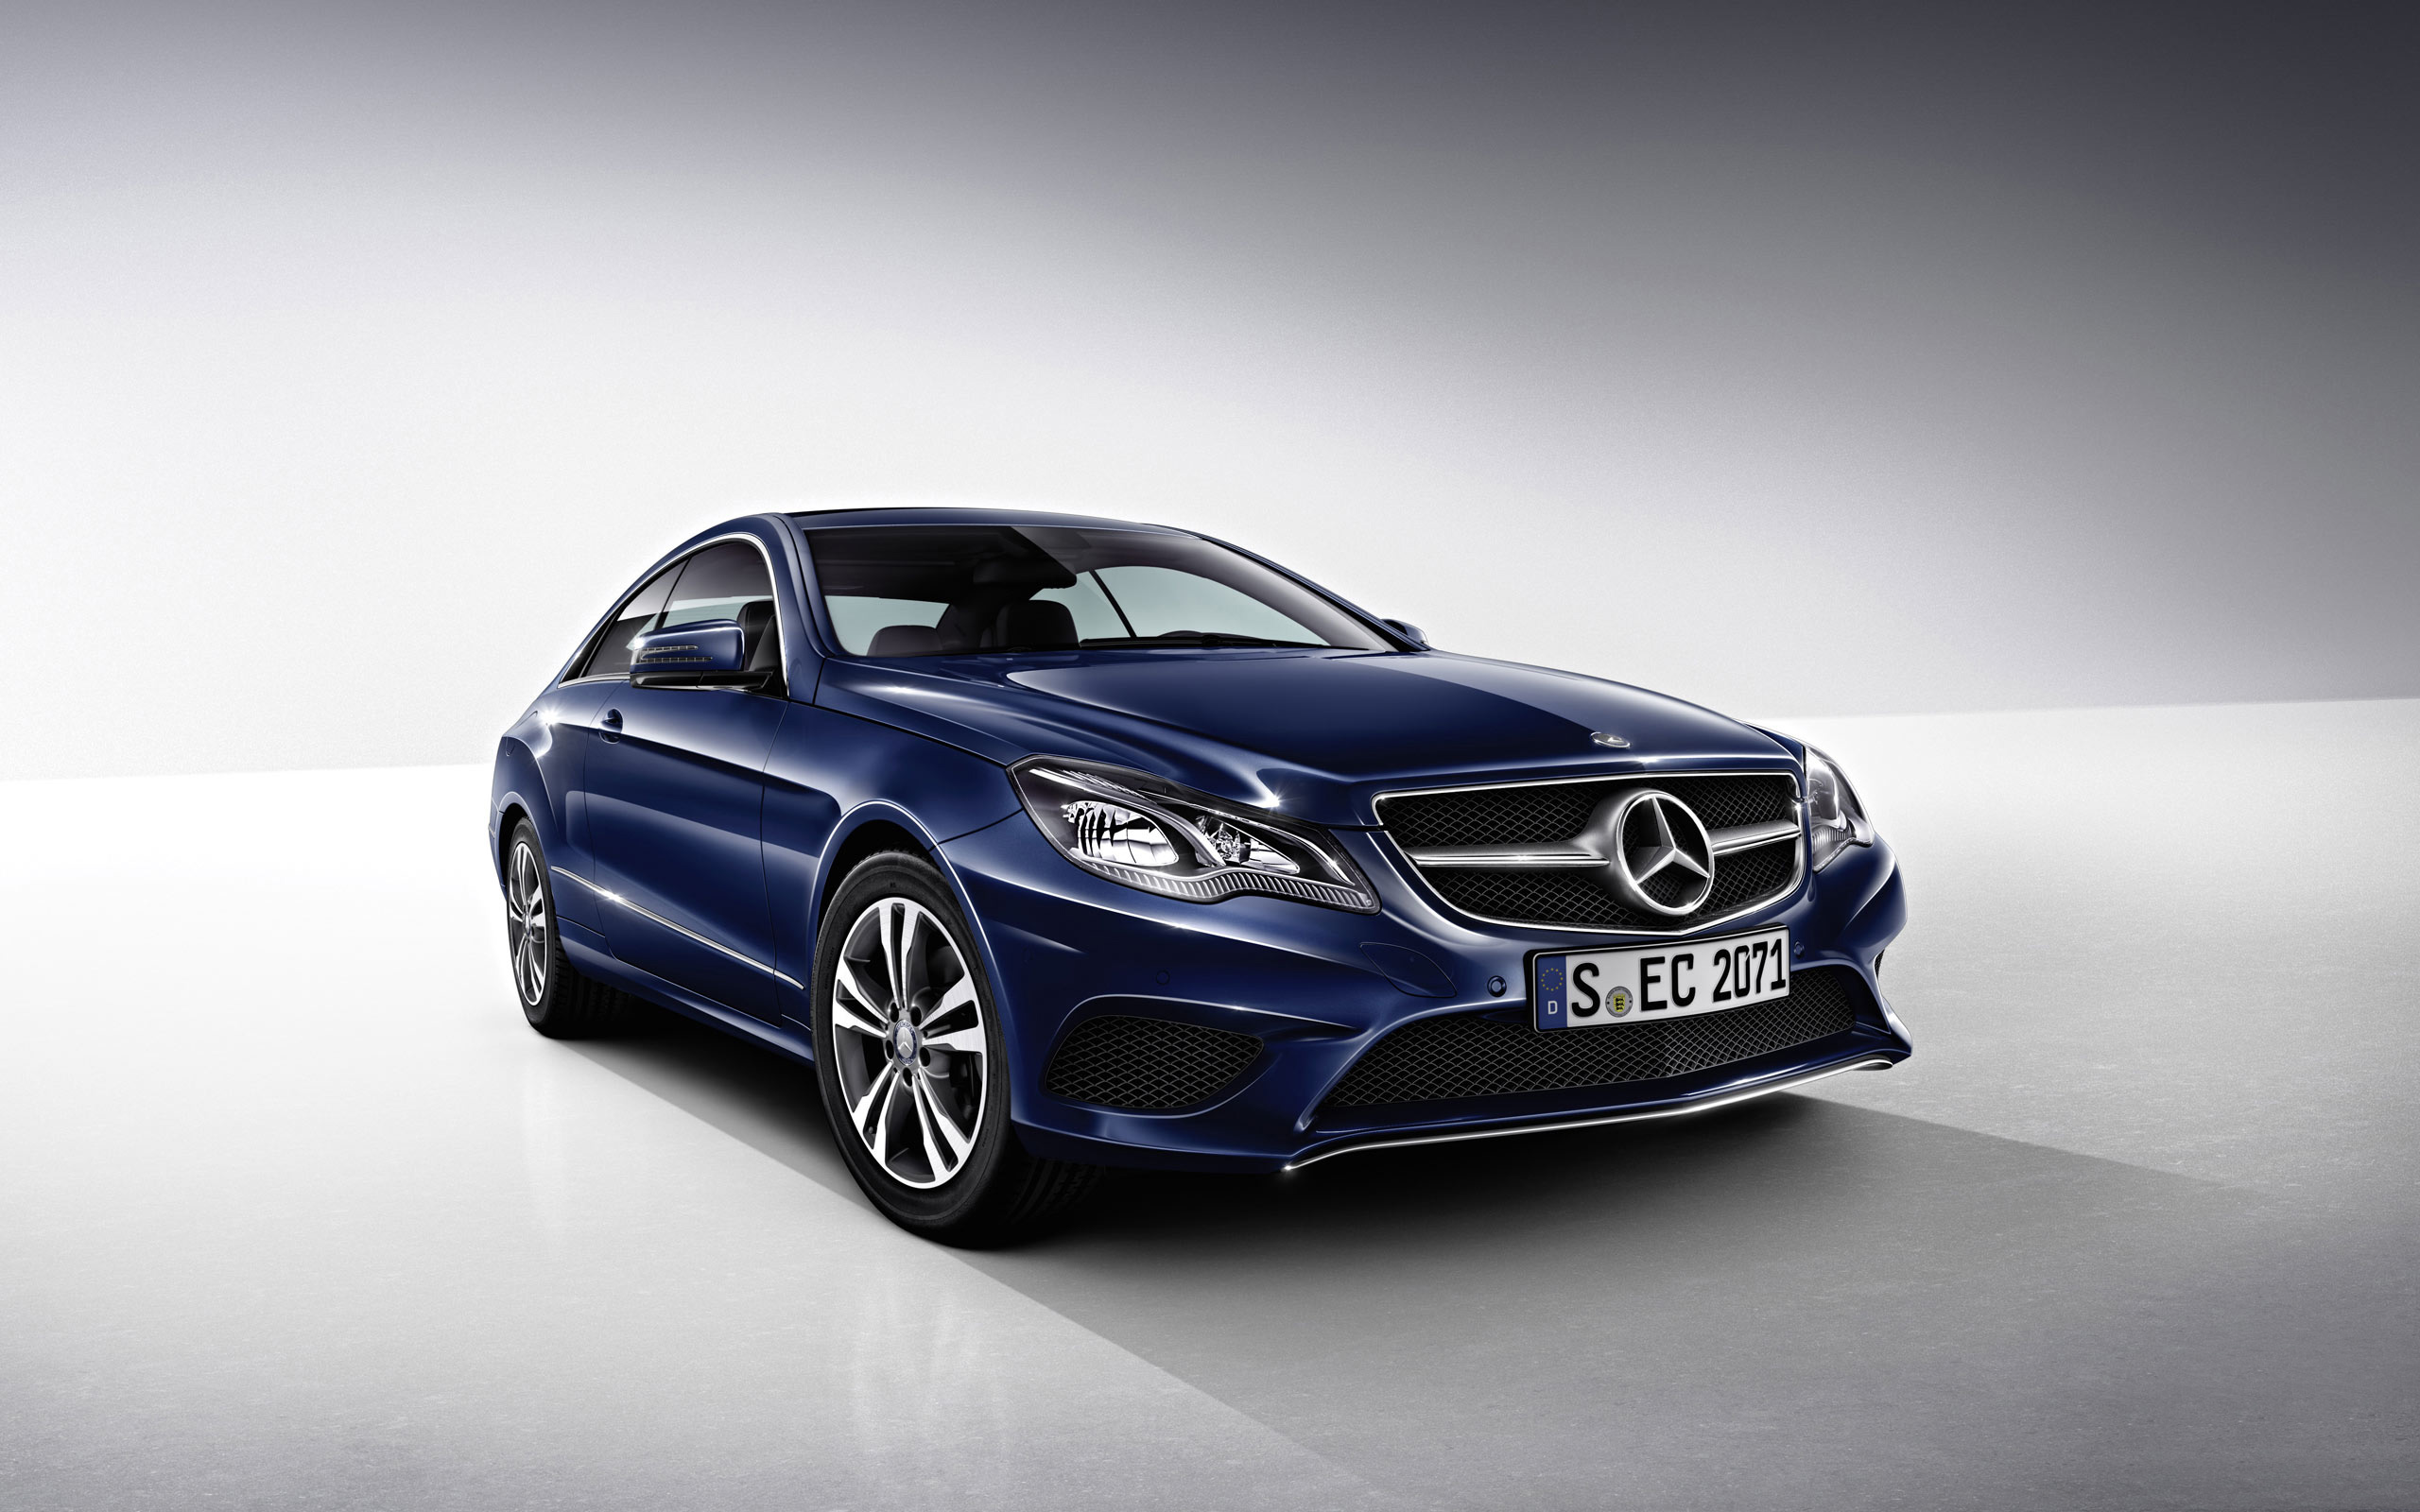 2014 mercedes benz e class coupe wallpaper hd car for 2014 mercedes benz truck